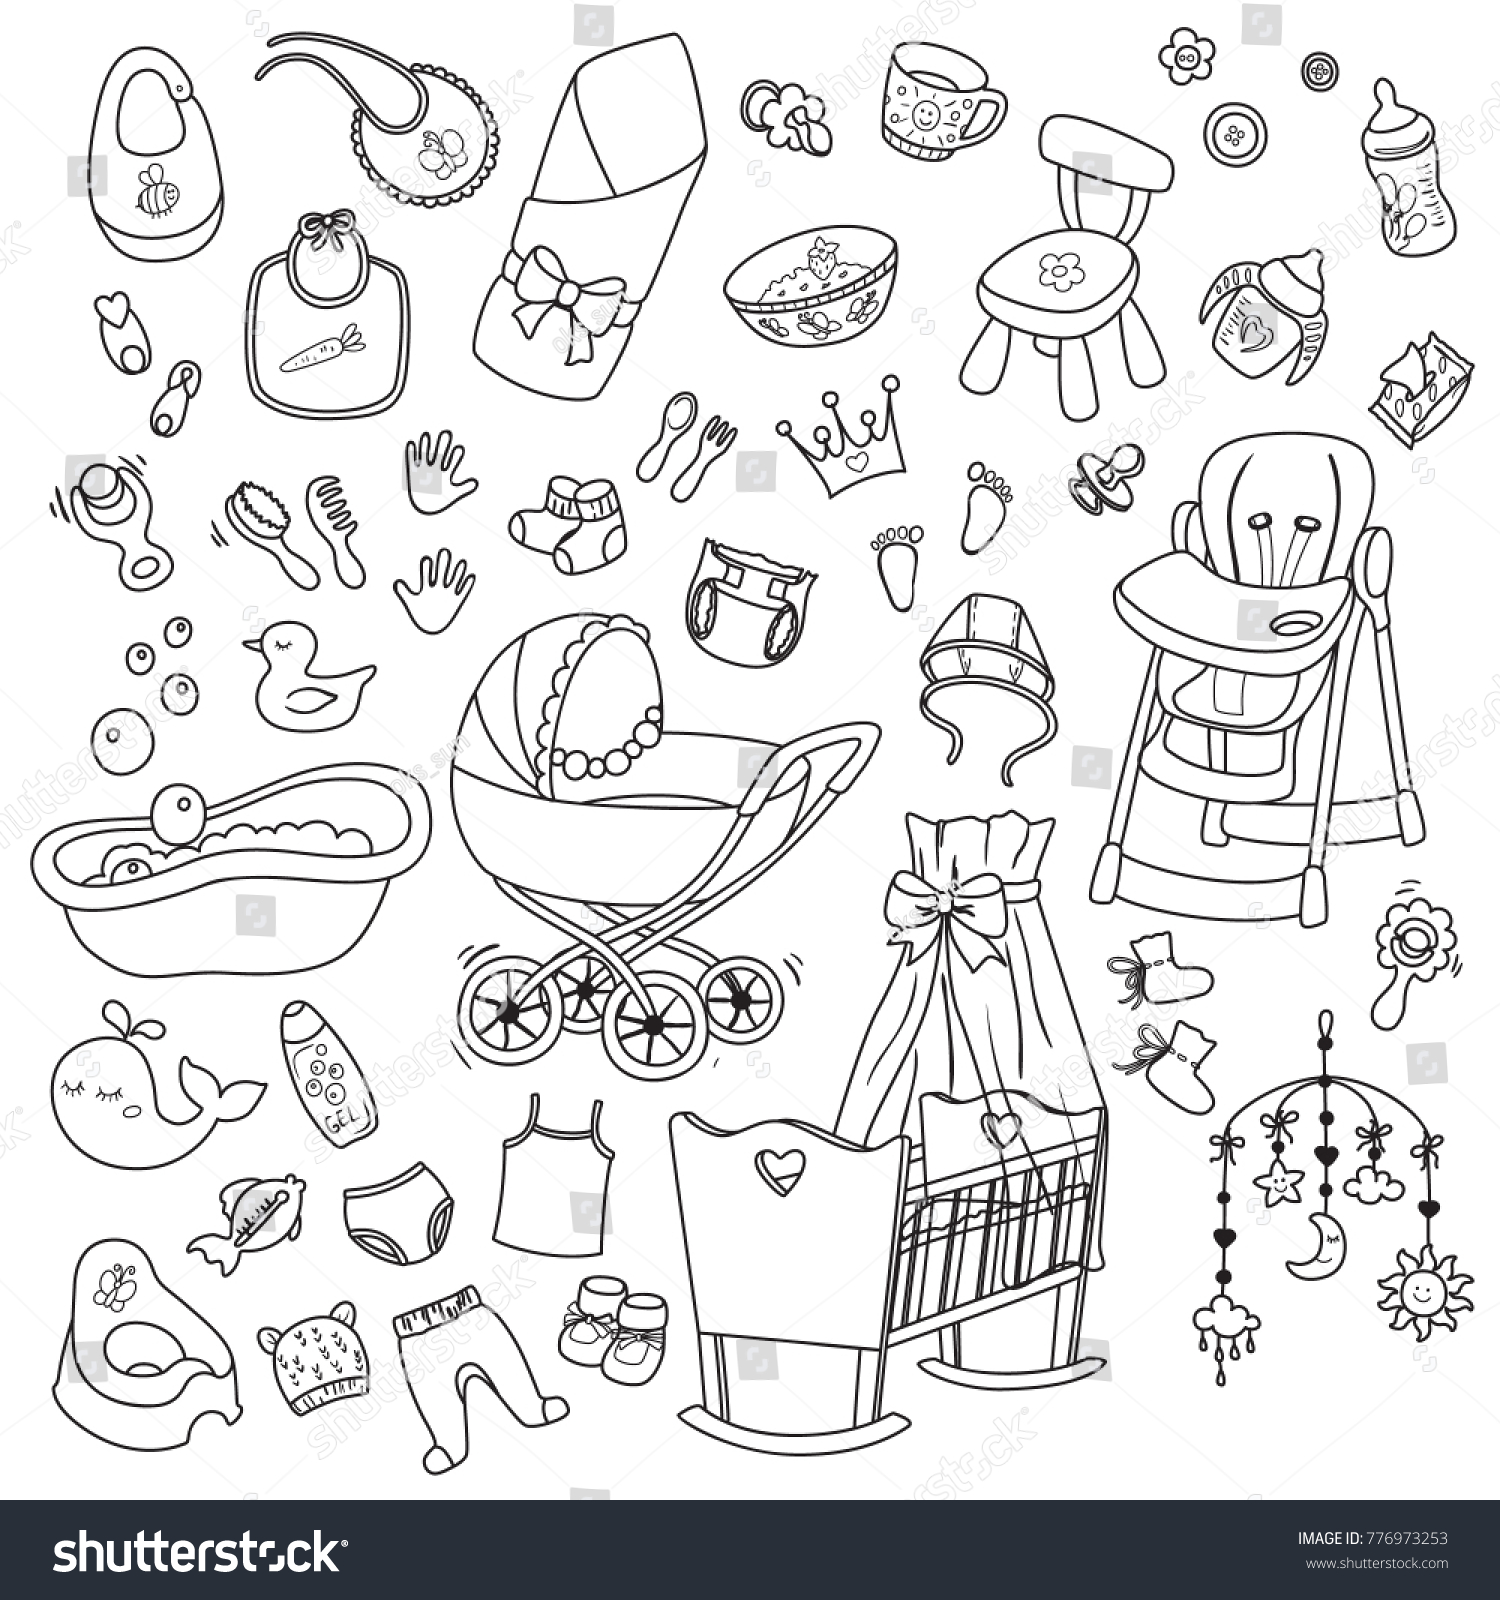 Big Cute Baby Set Collection Doodle Stock Vector Royalty Free